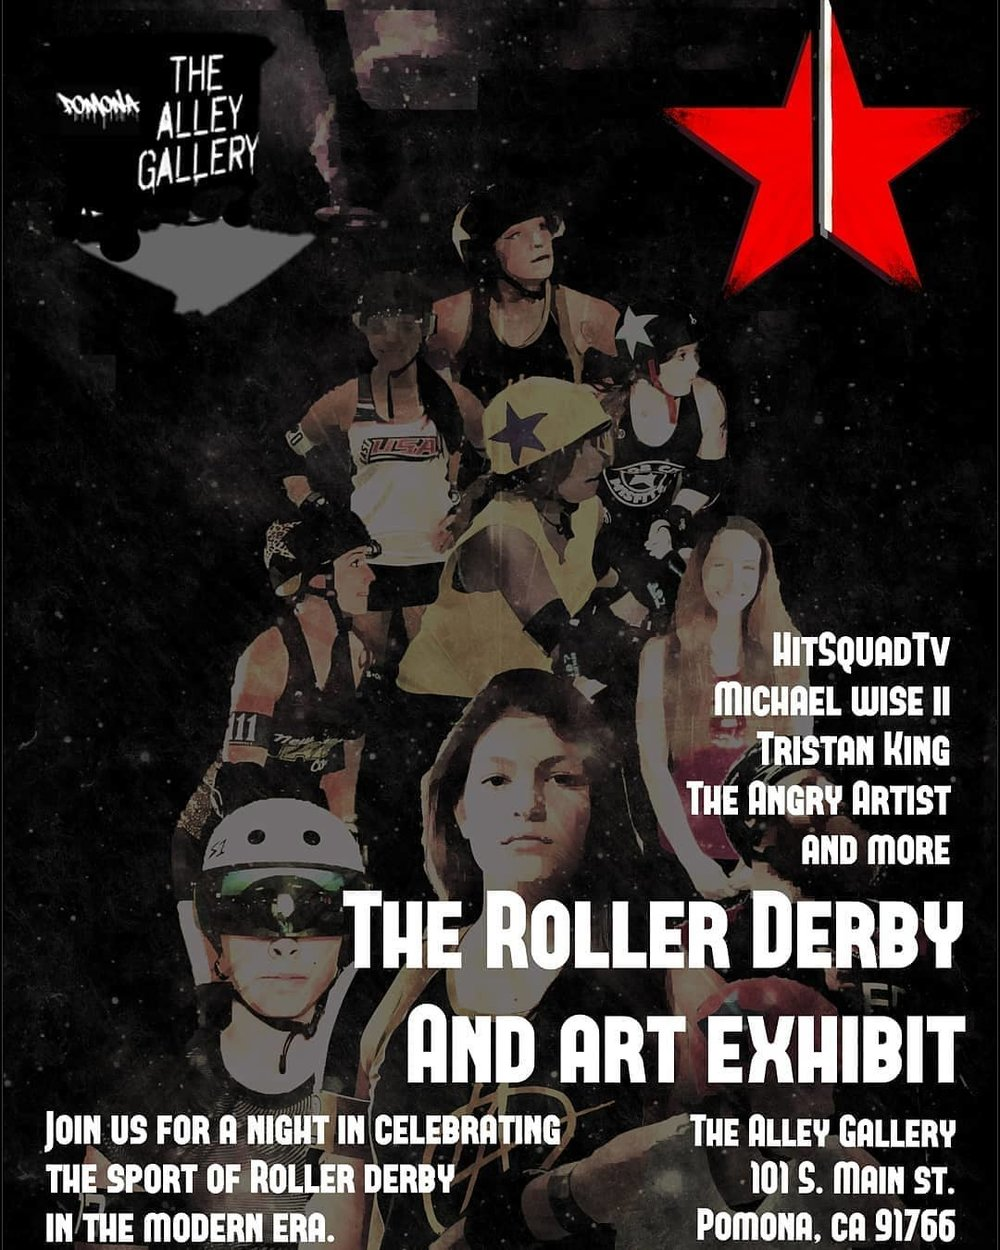 Alley Gallery flyer.jpg